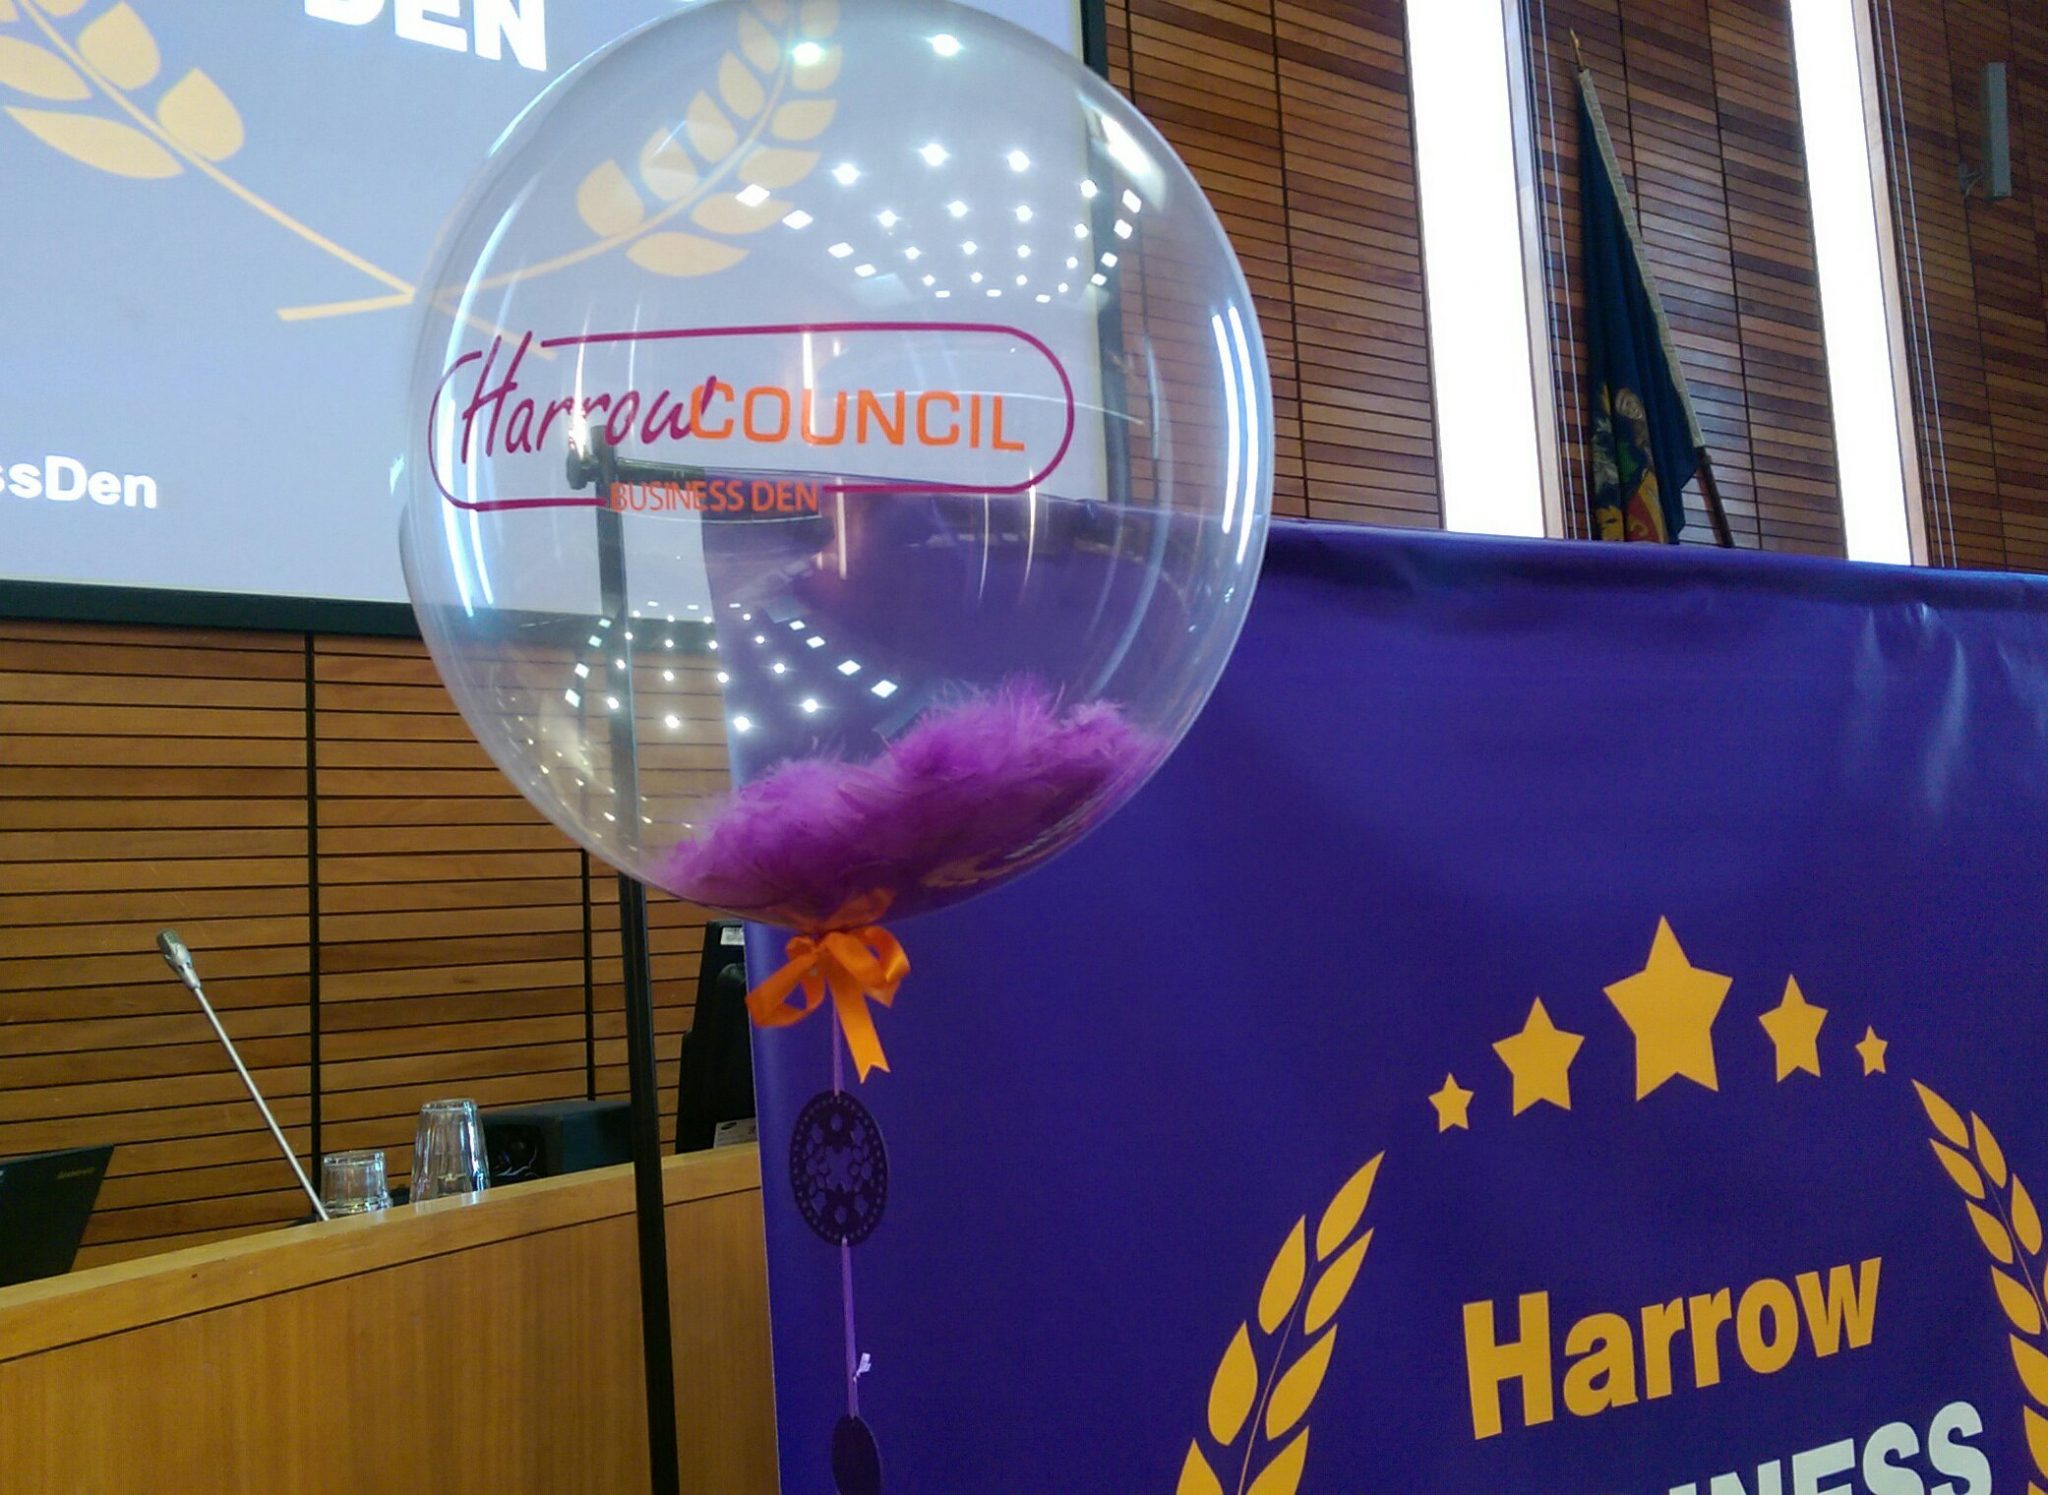 Feather Corporate branded balloon